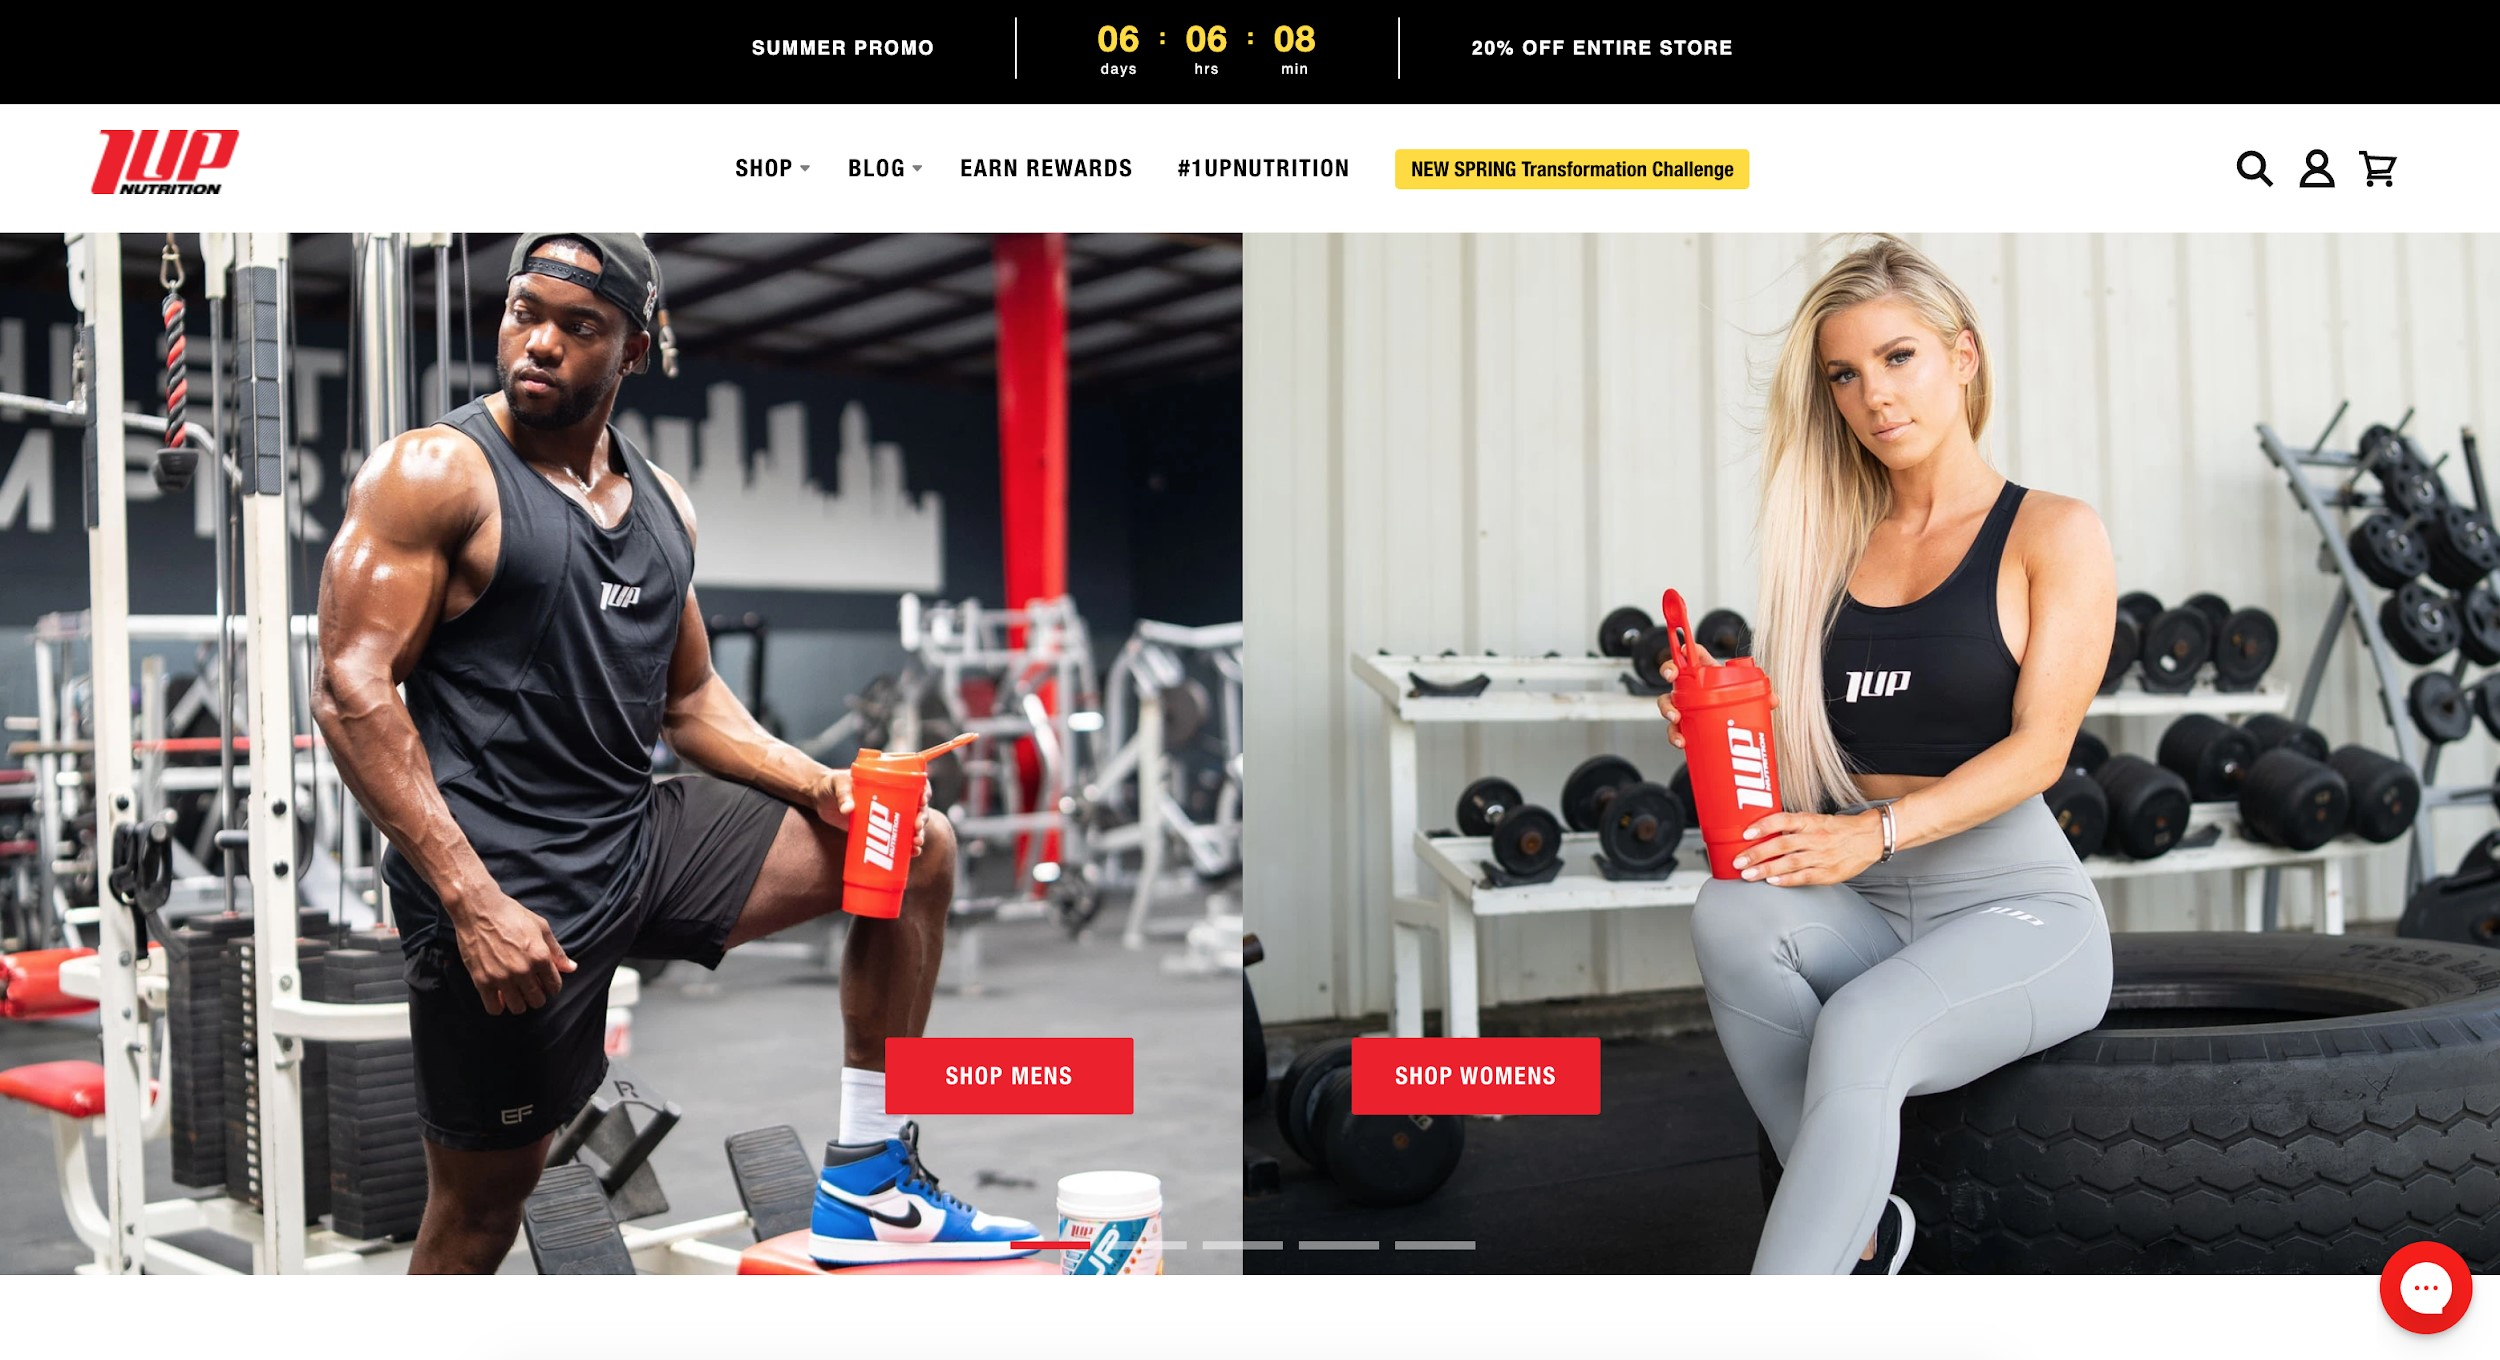 1up nutrition best e-commerce sites